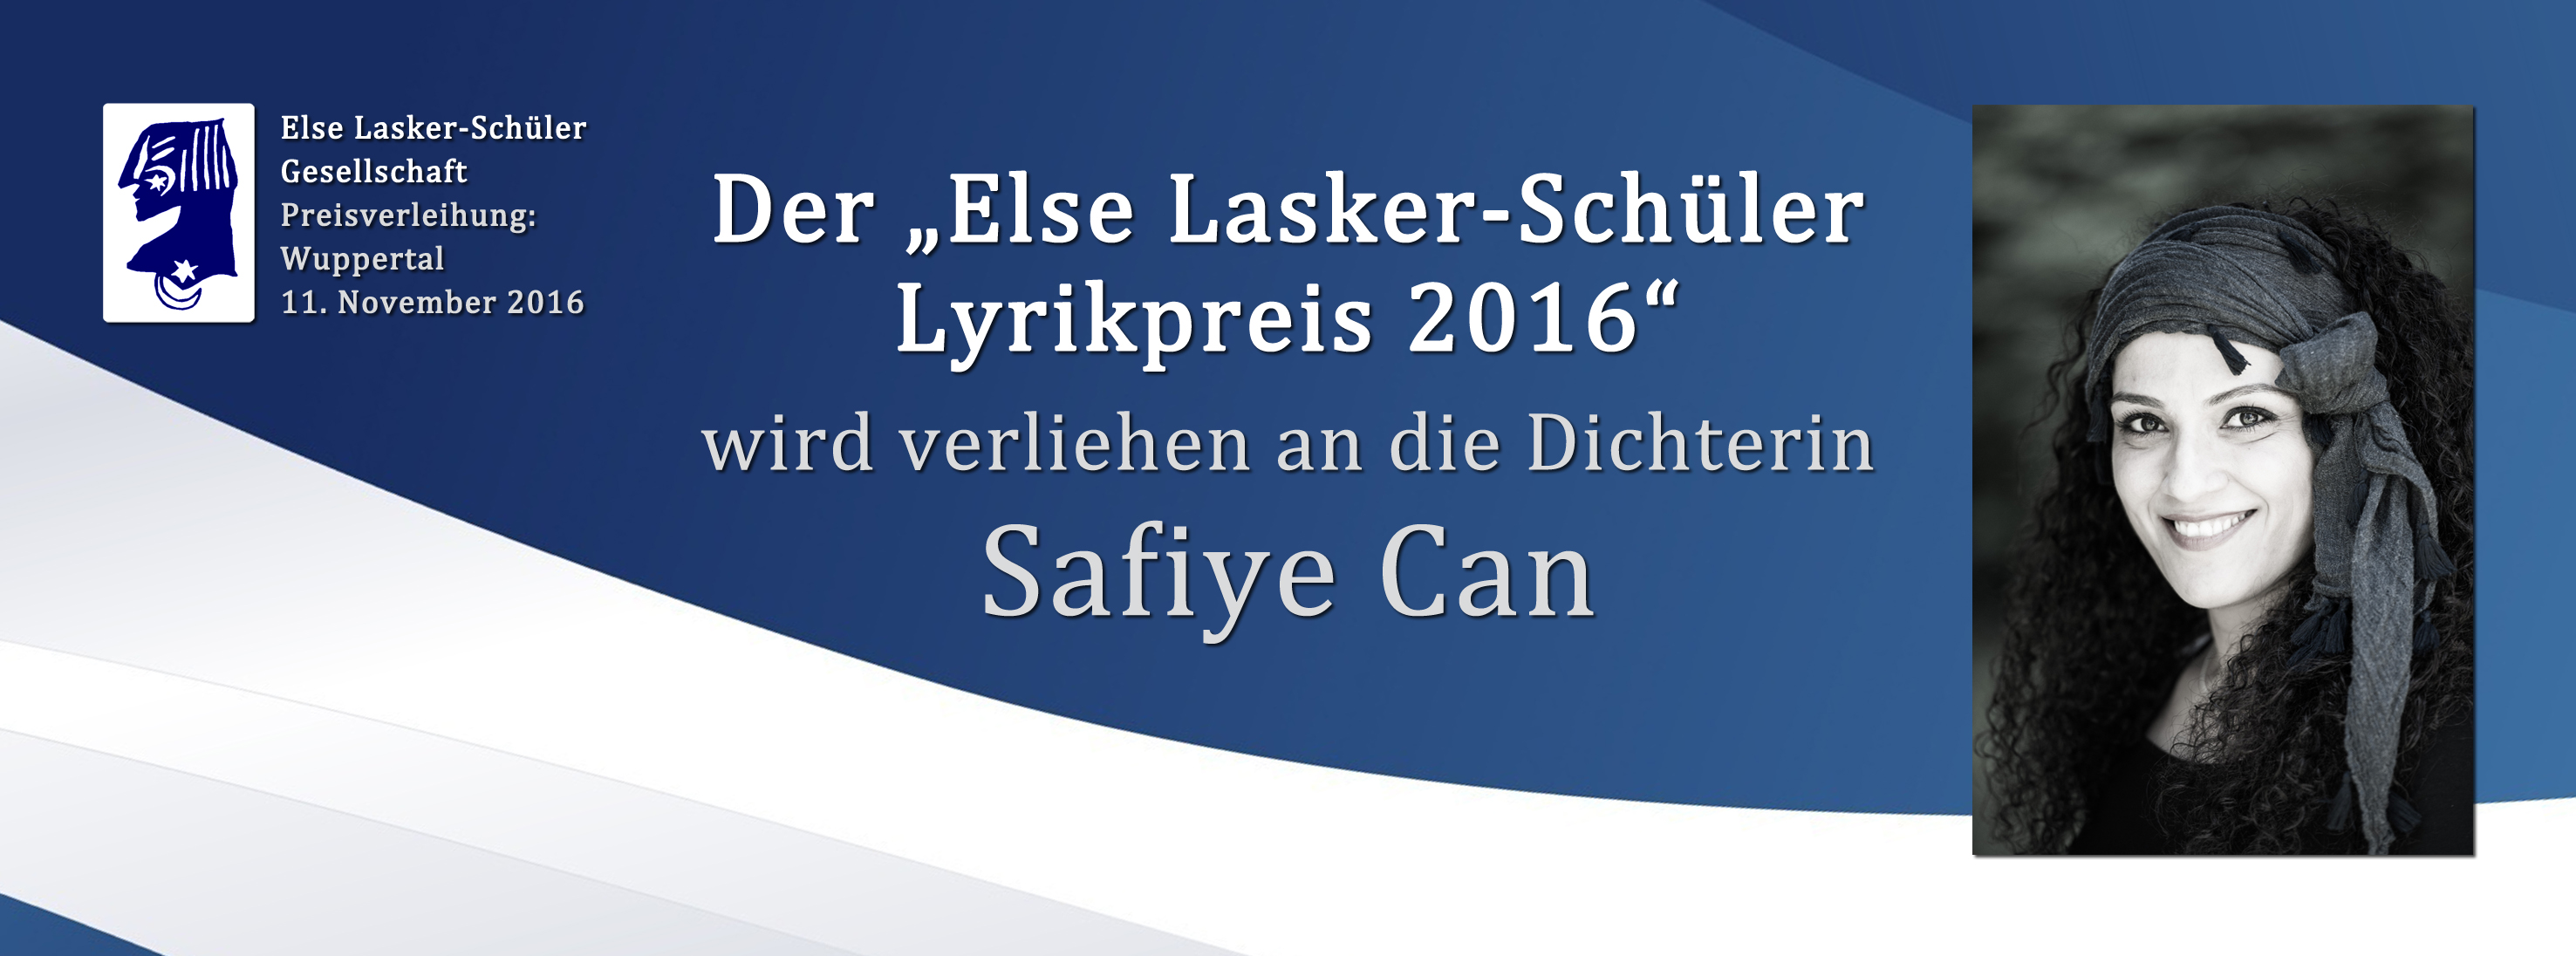 Else Lasker Schüler Lyrikpreis_Safiye Can